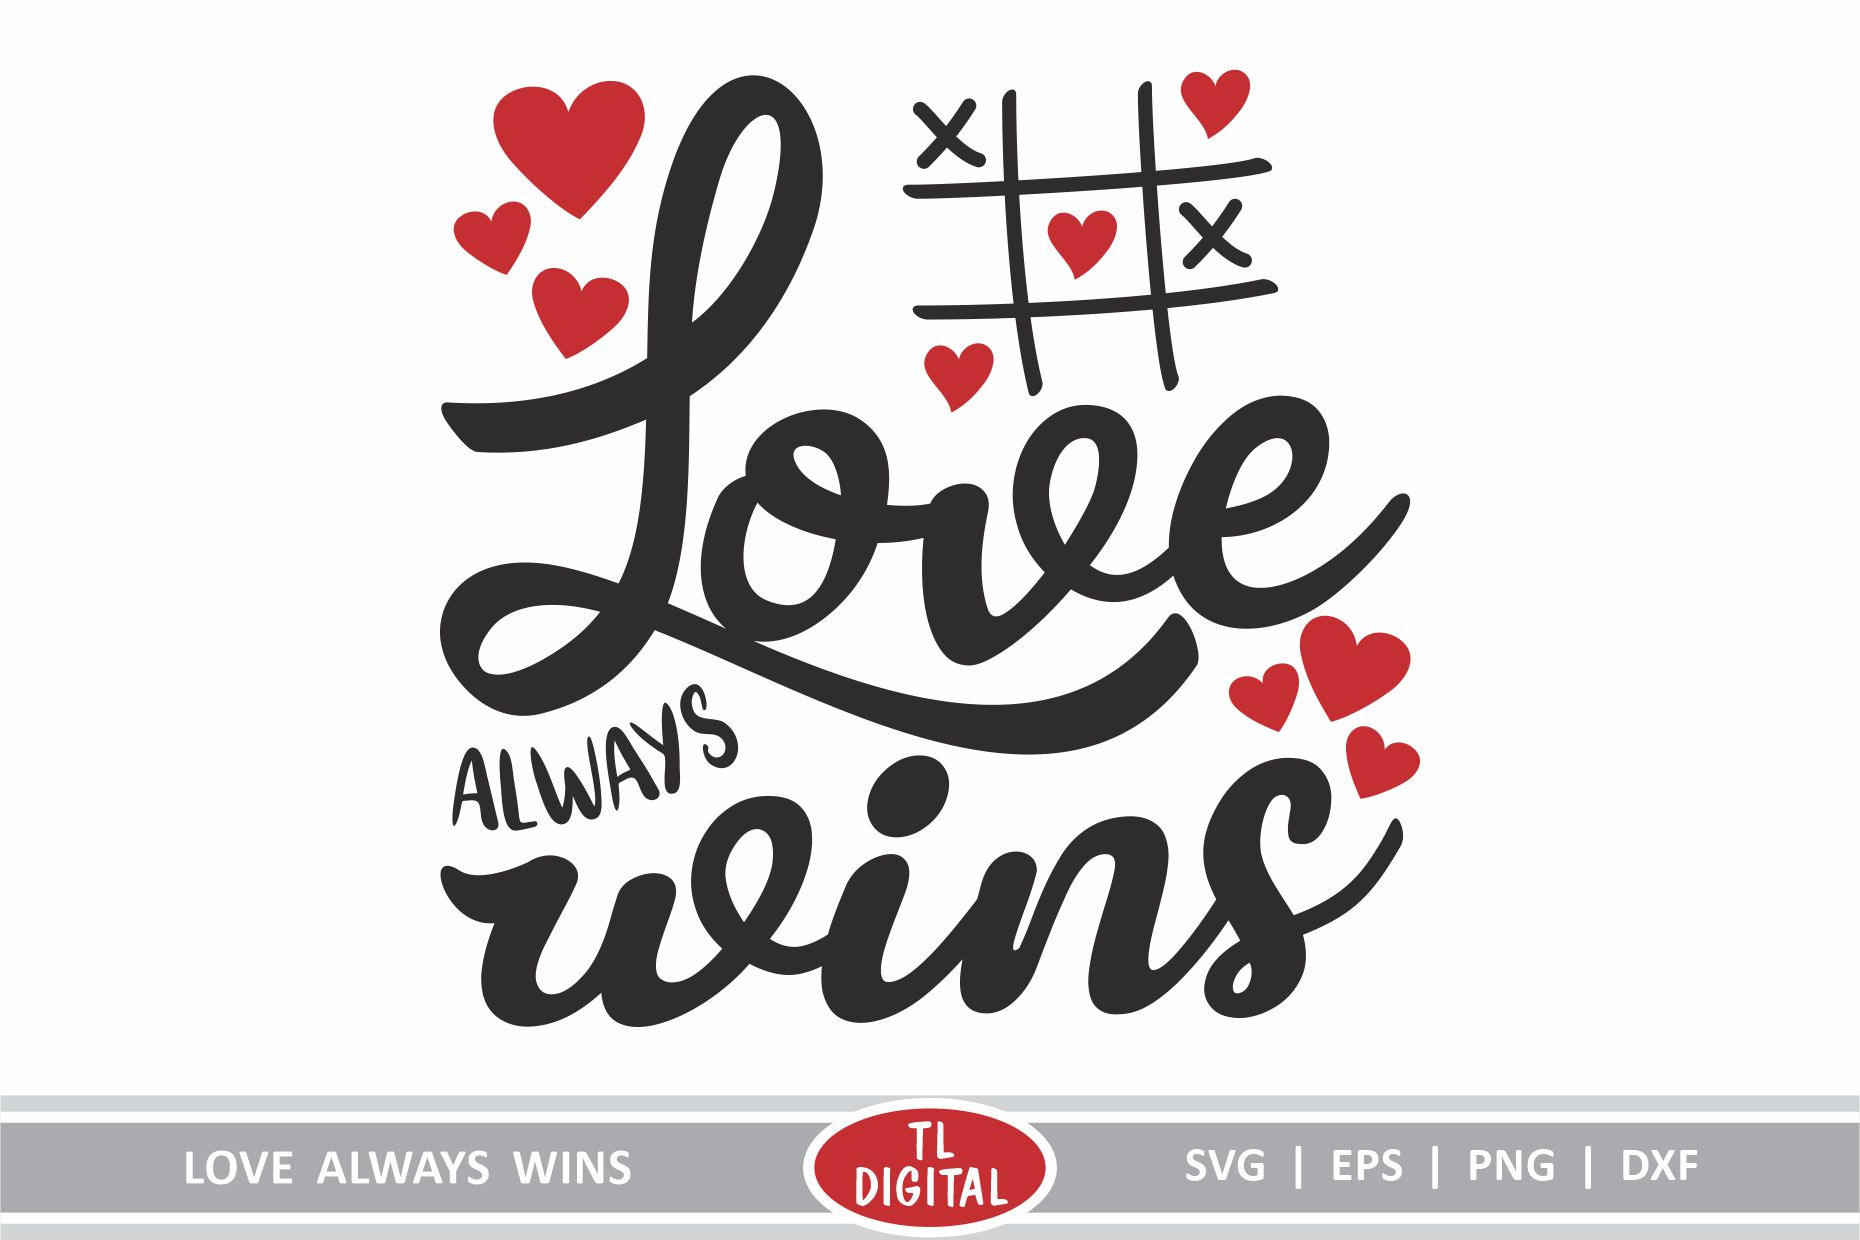 Download Free Love Always Wins Graphic By Tl Digital Creative Fabrica for Cricut Explore, Silhouette and other cutting machines.